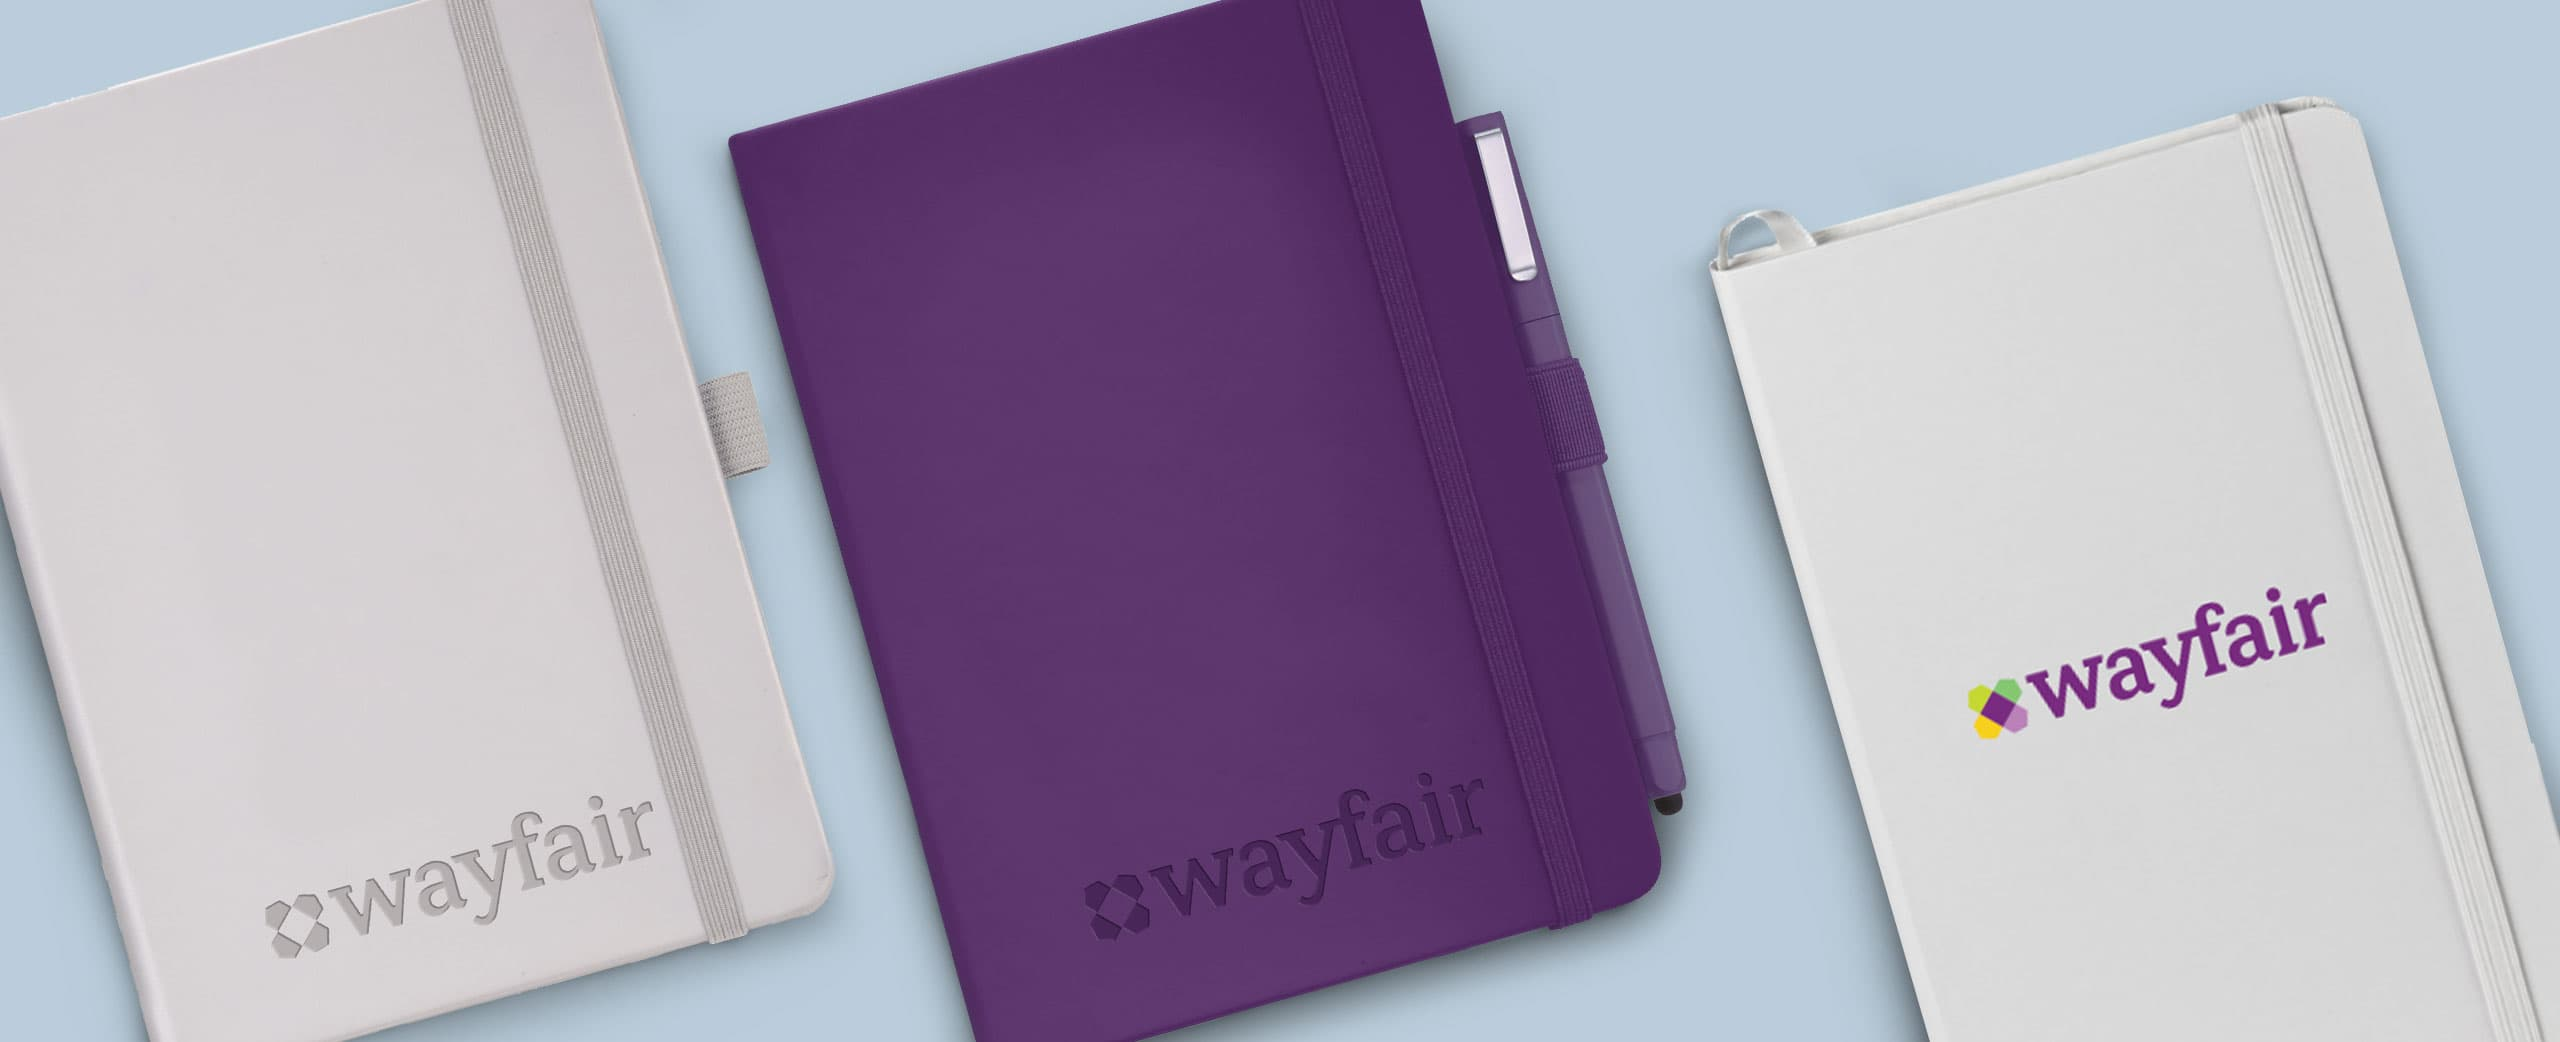 wayfair_journals